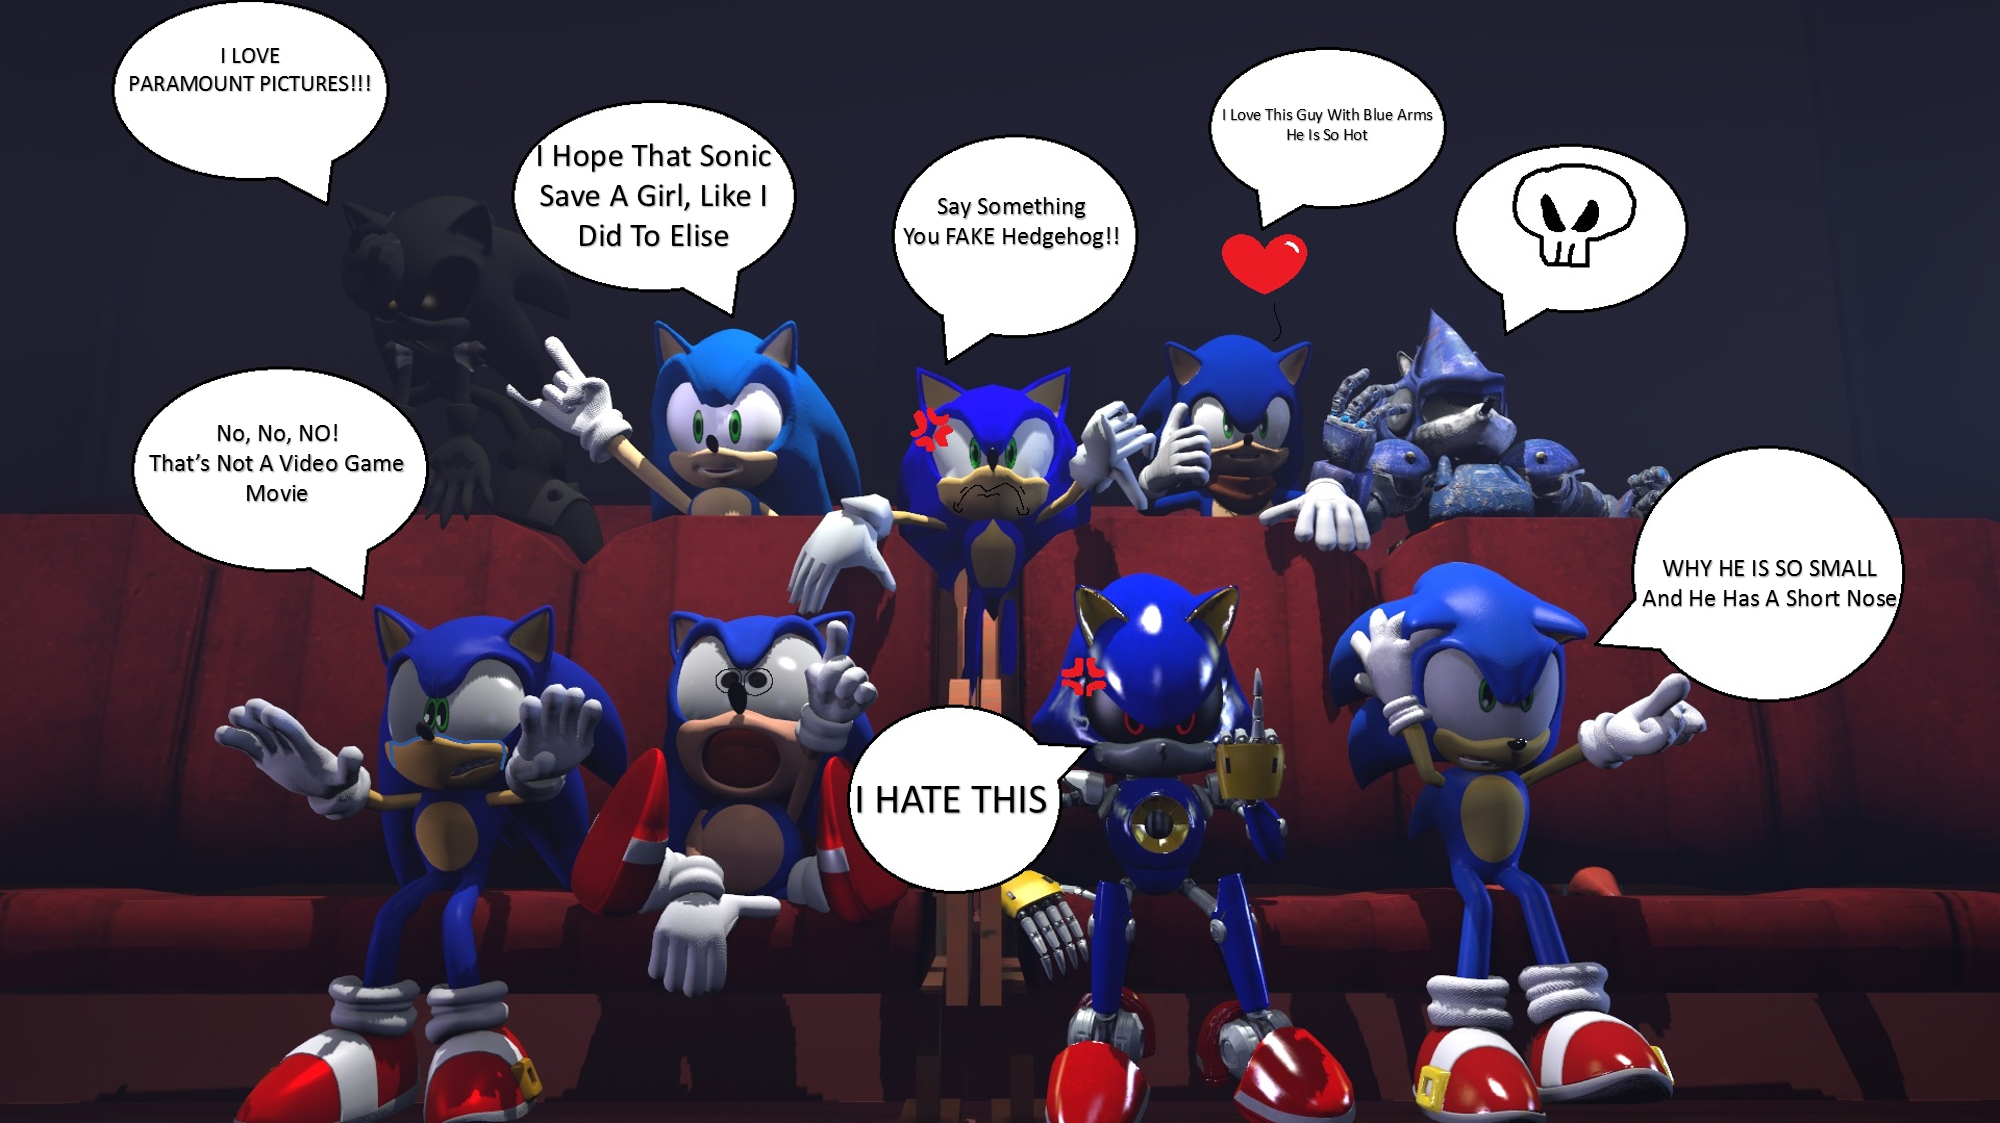 When The Old Design Sonic Movie Was Released By Angrygermankidoble On Deviantart